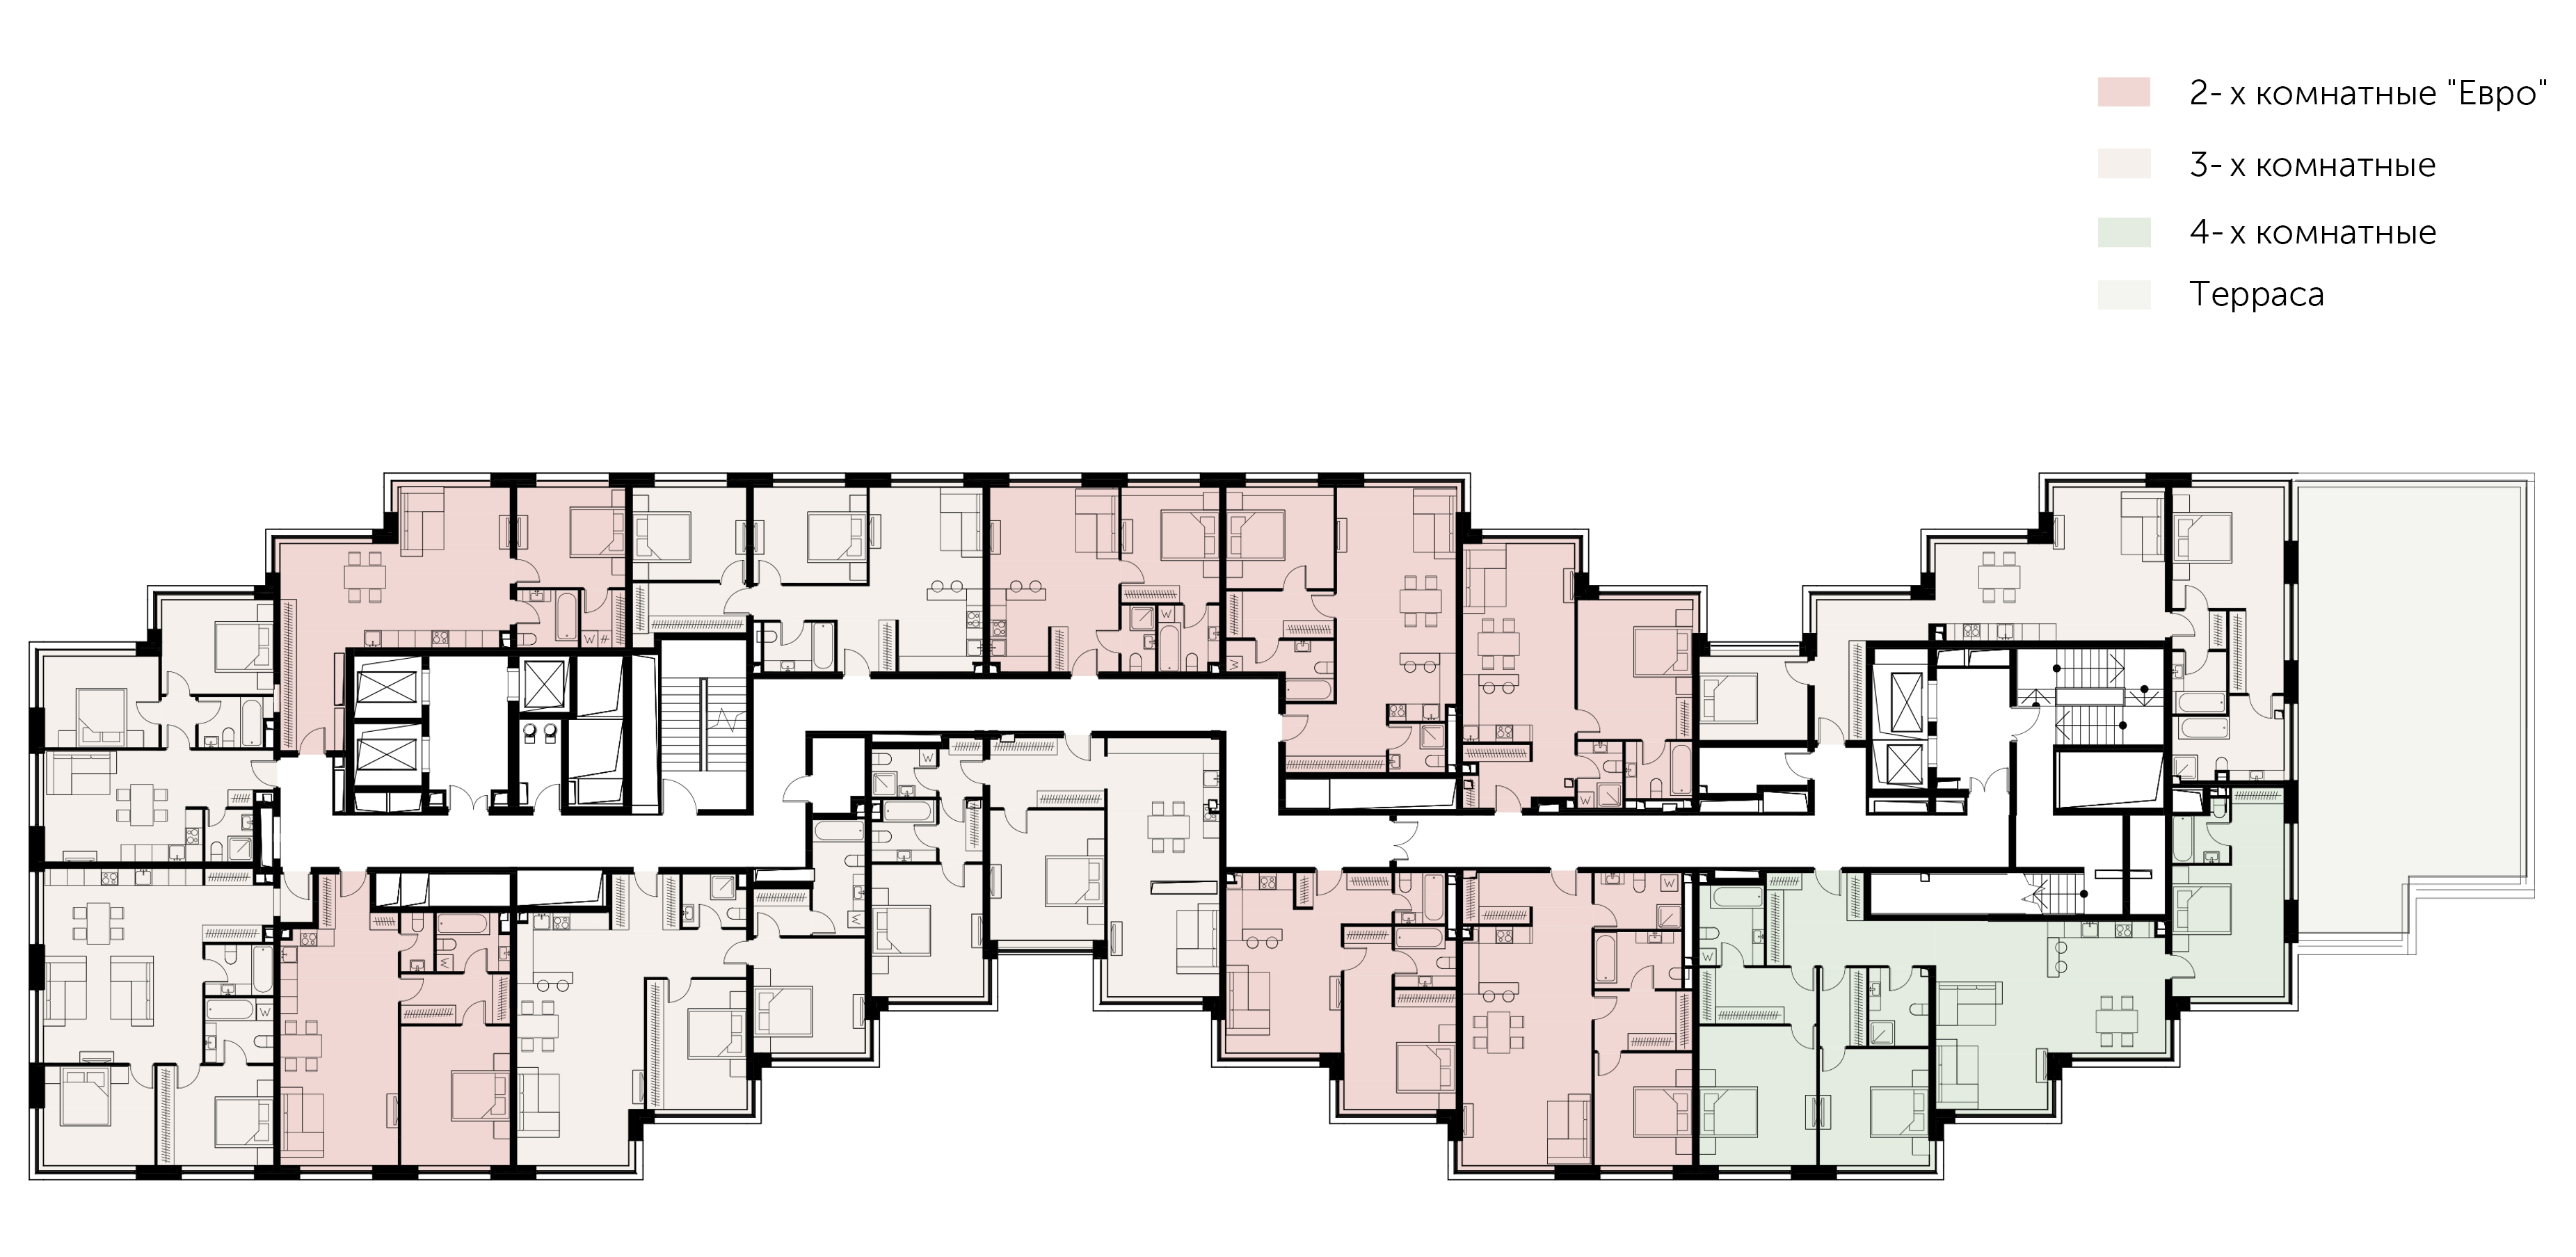 /source/1054_Sakharova/1054_15th floor plan_2.jpg